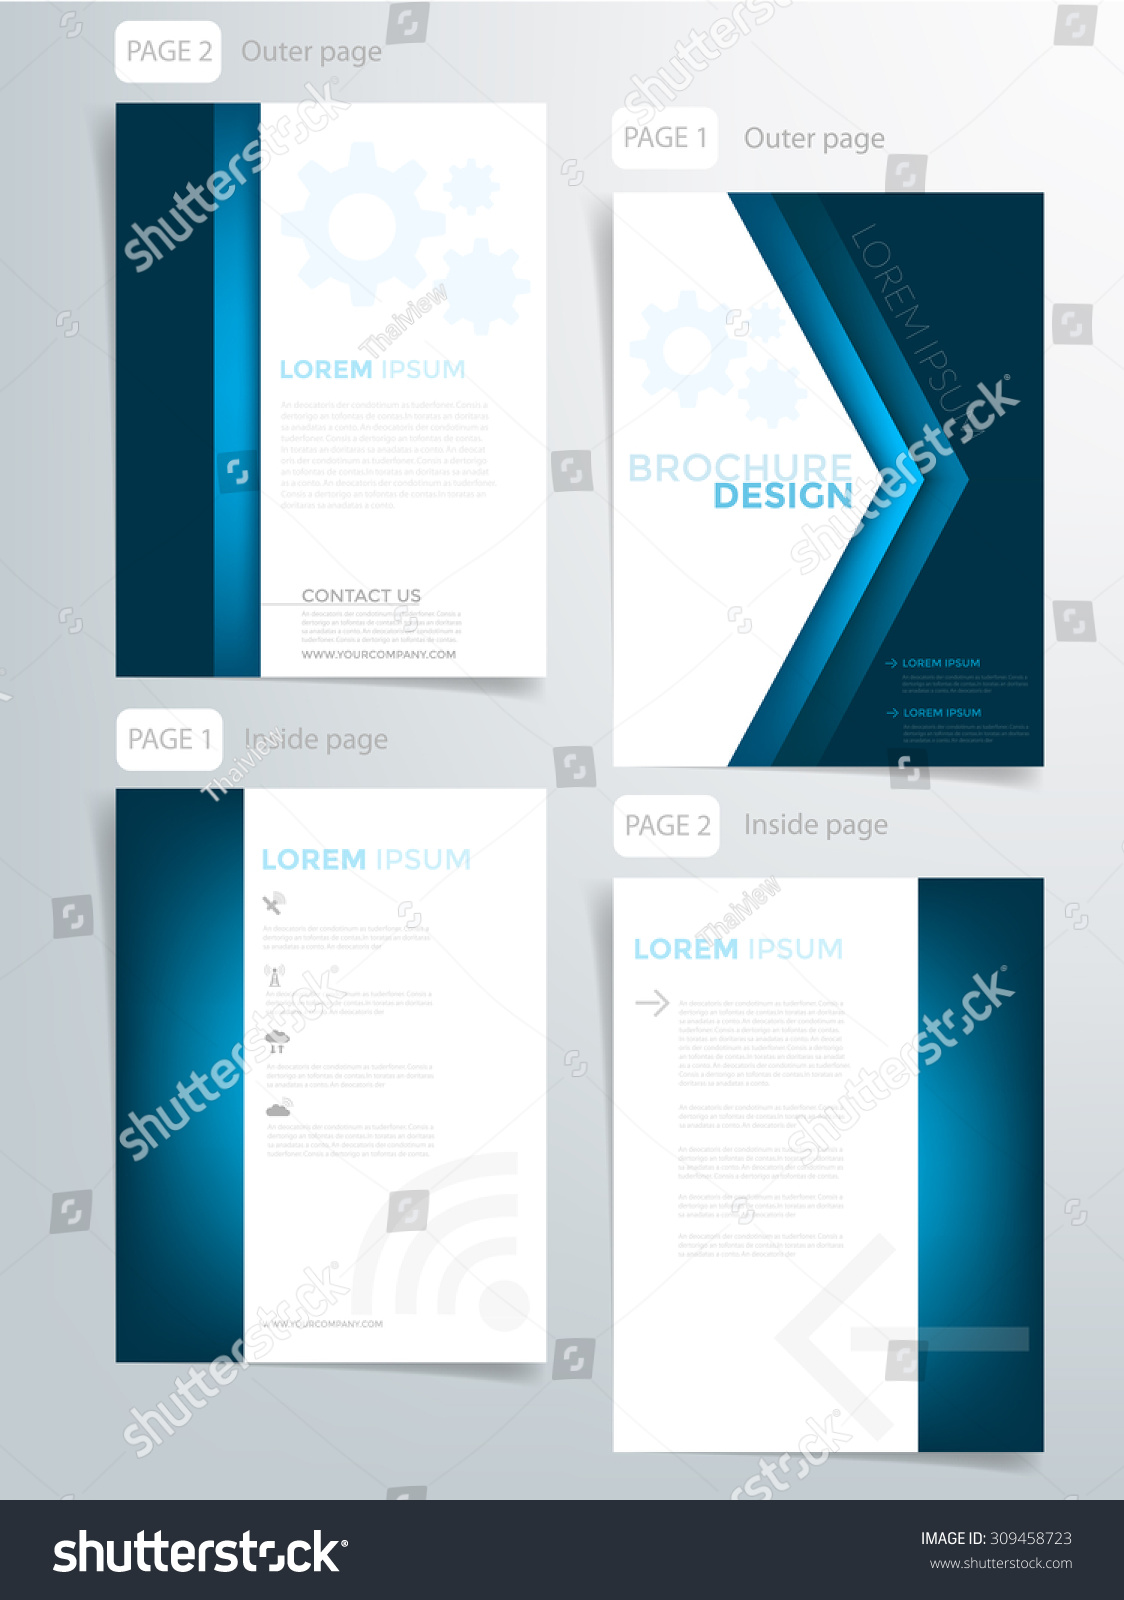 Amazing 10 Best Resumes Tall 10 Label Template Flat 1099 Form Template 13b Porting Templates Old 16 Team Bracket Template Brown1st Birthday Invite Templates Brochure Template Orange Blue Pastel Element Stock Vector ..